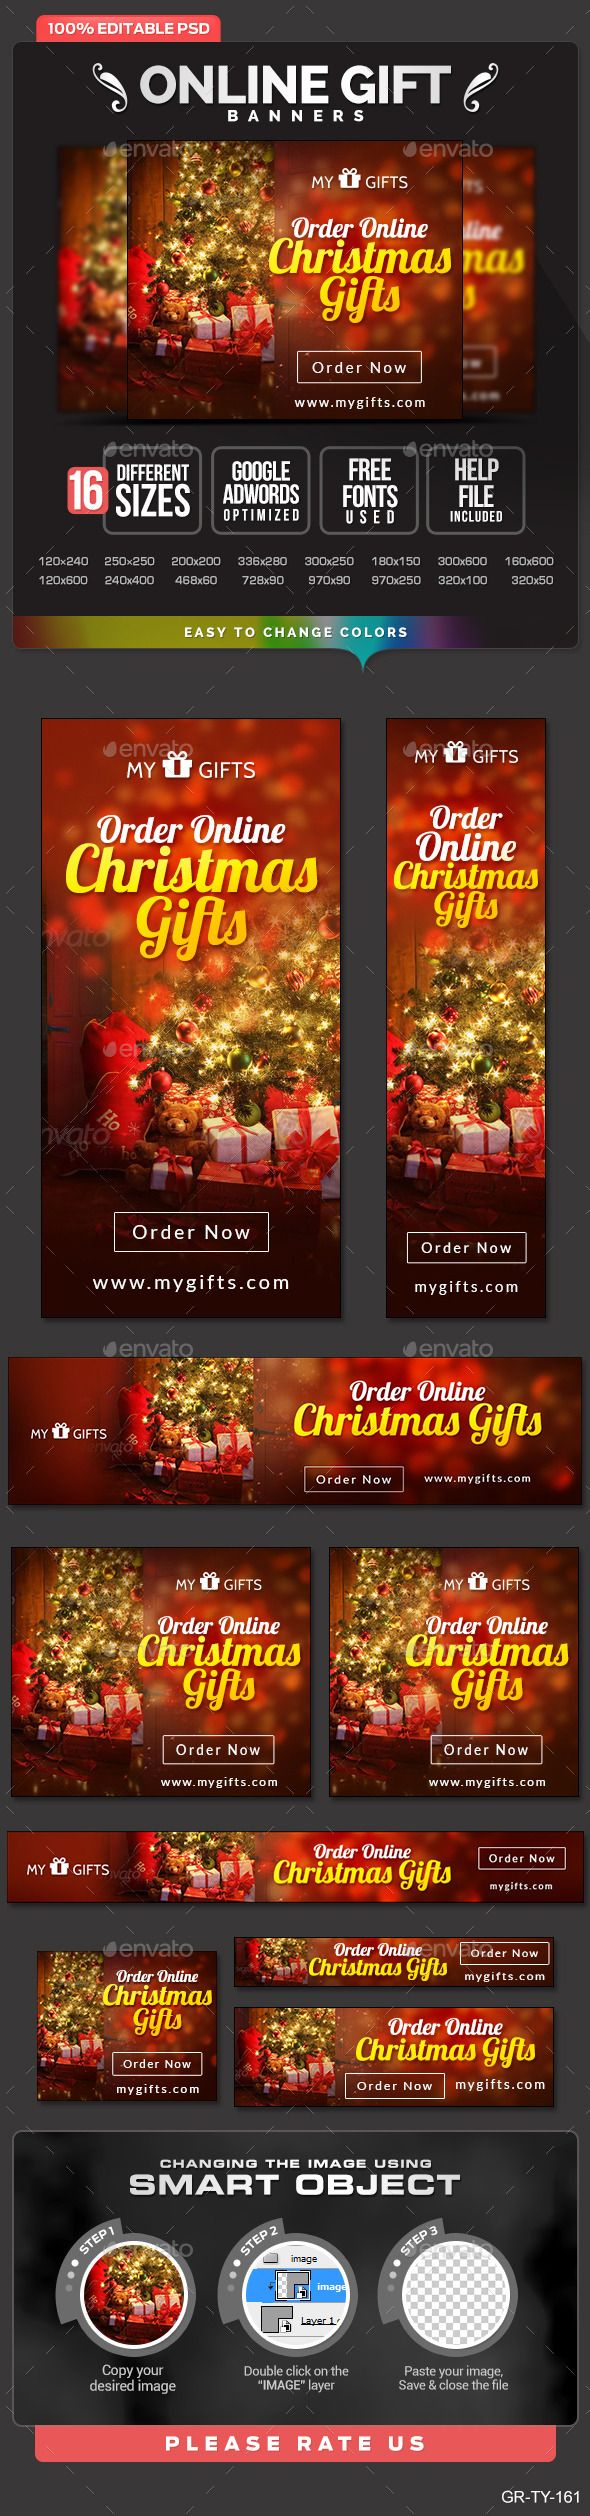 Online Gift Store Banners Template PSD | Buy and Download: http://graphicriver.net/item/online-gift-store-banners/9709755?ref=ksioks